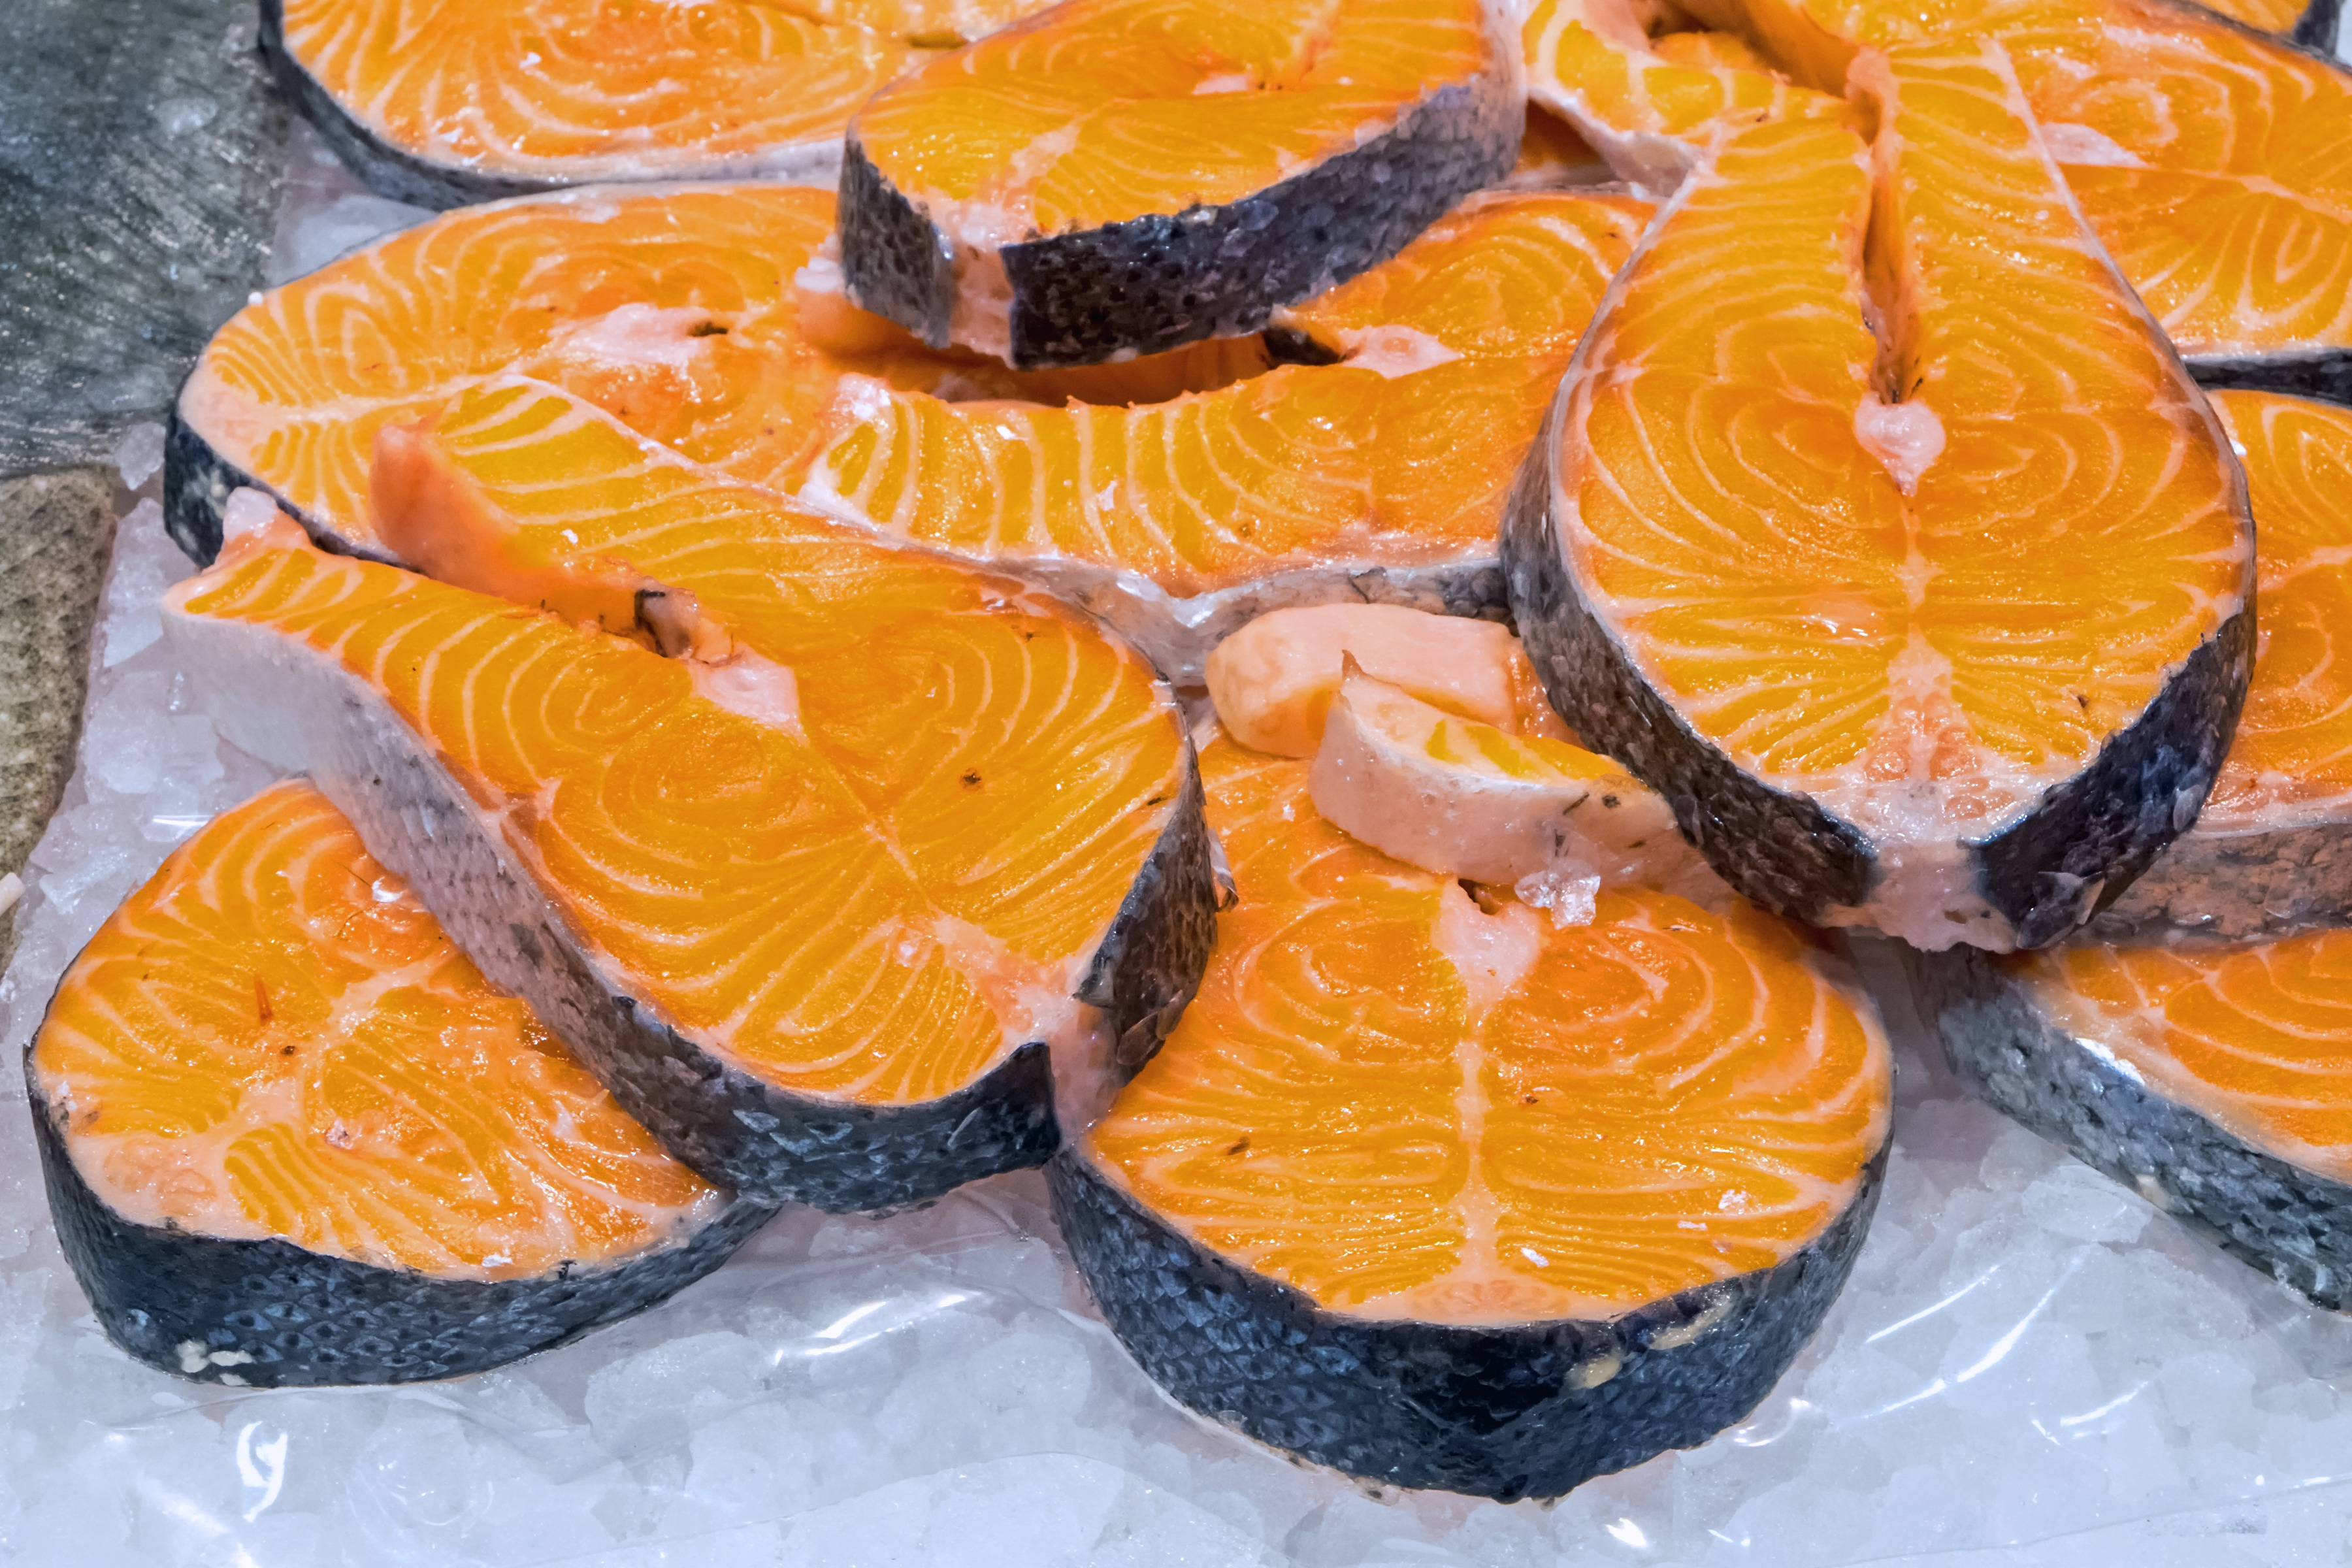 Fresh Filet Of Salmon For Sale At A Market